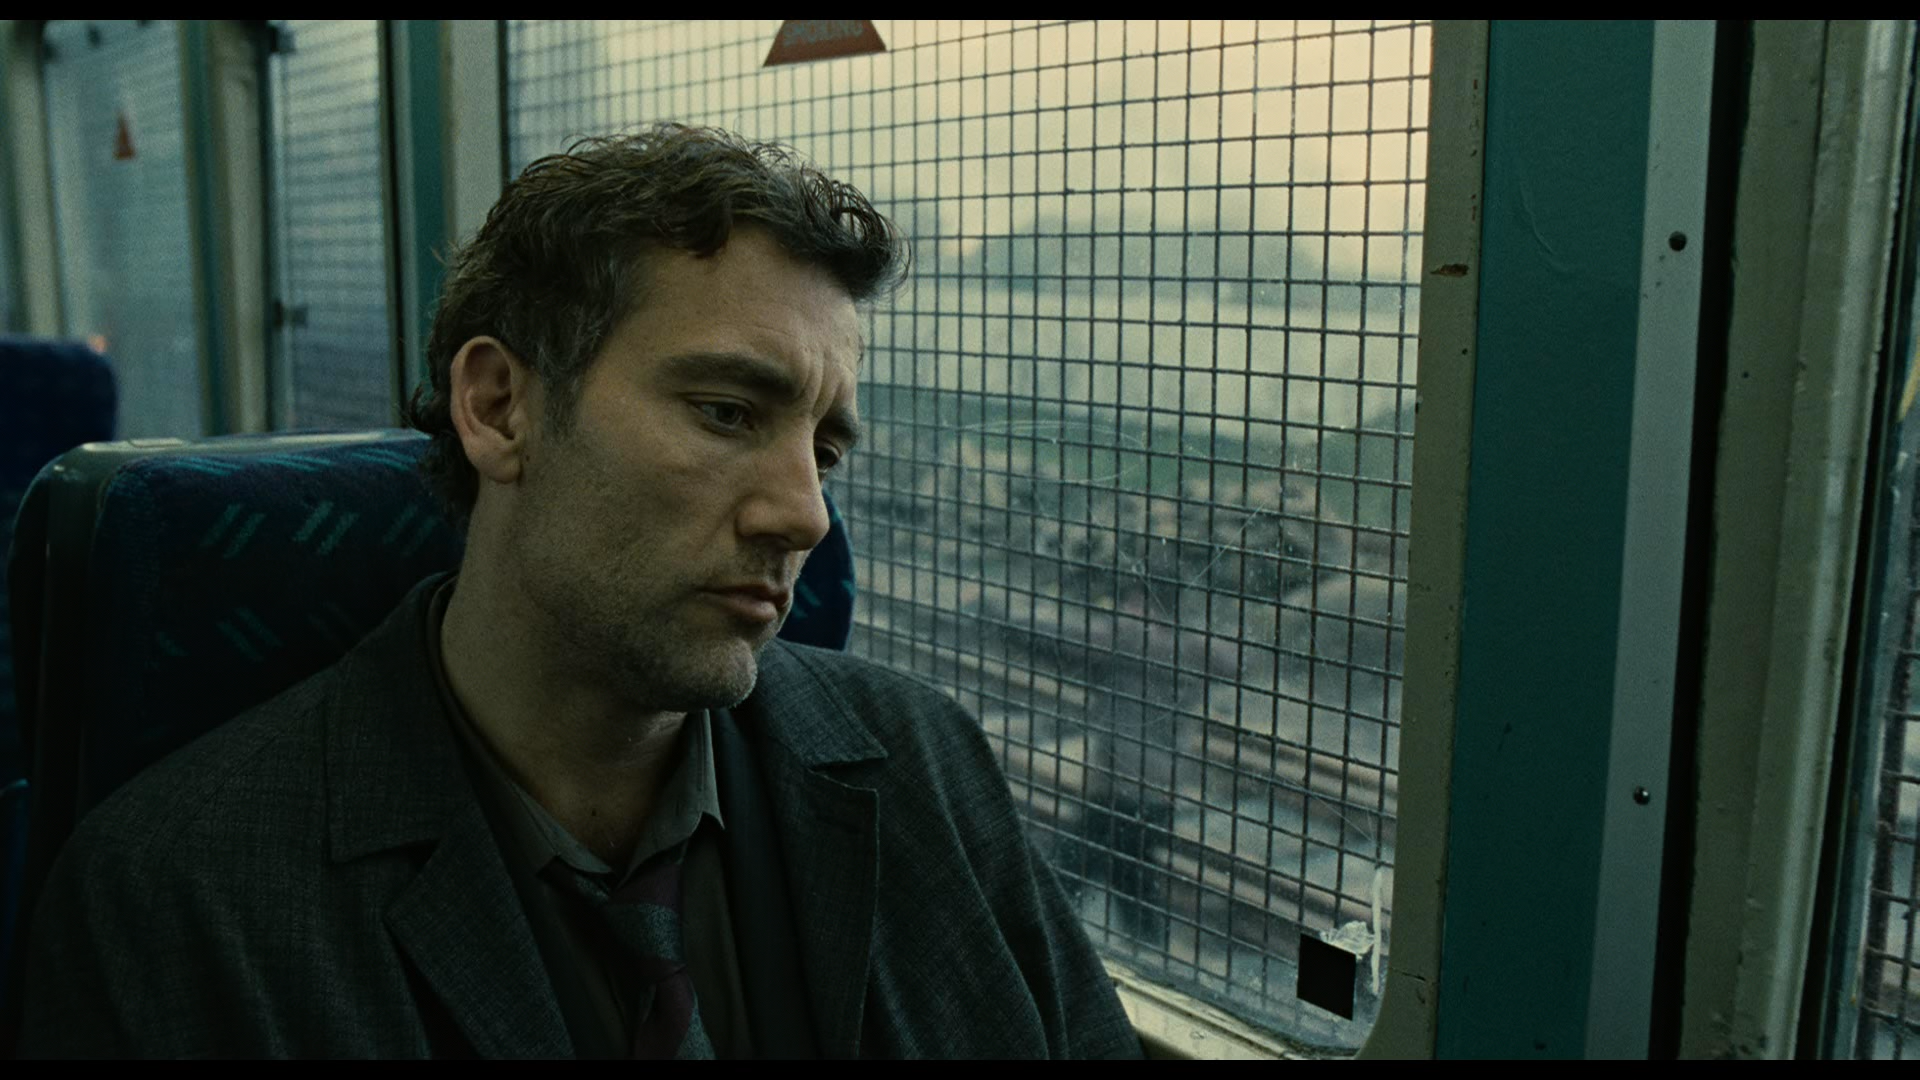 TOP 5 CLIVE OWEN FILMS